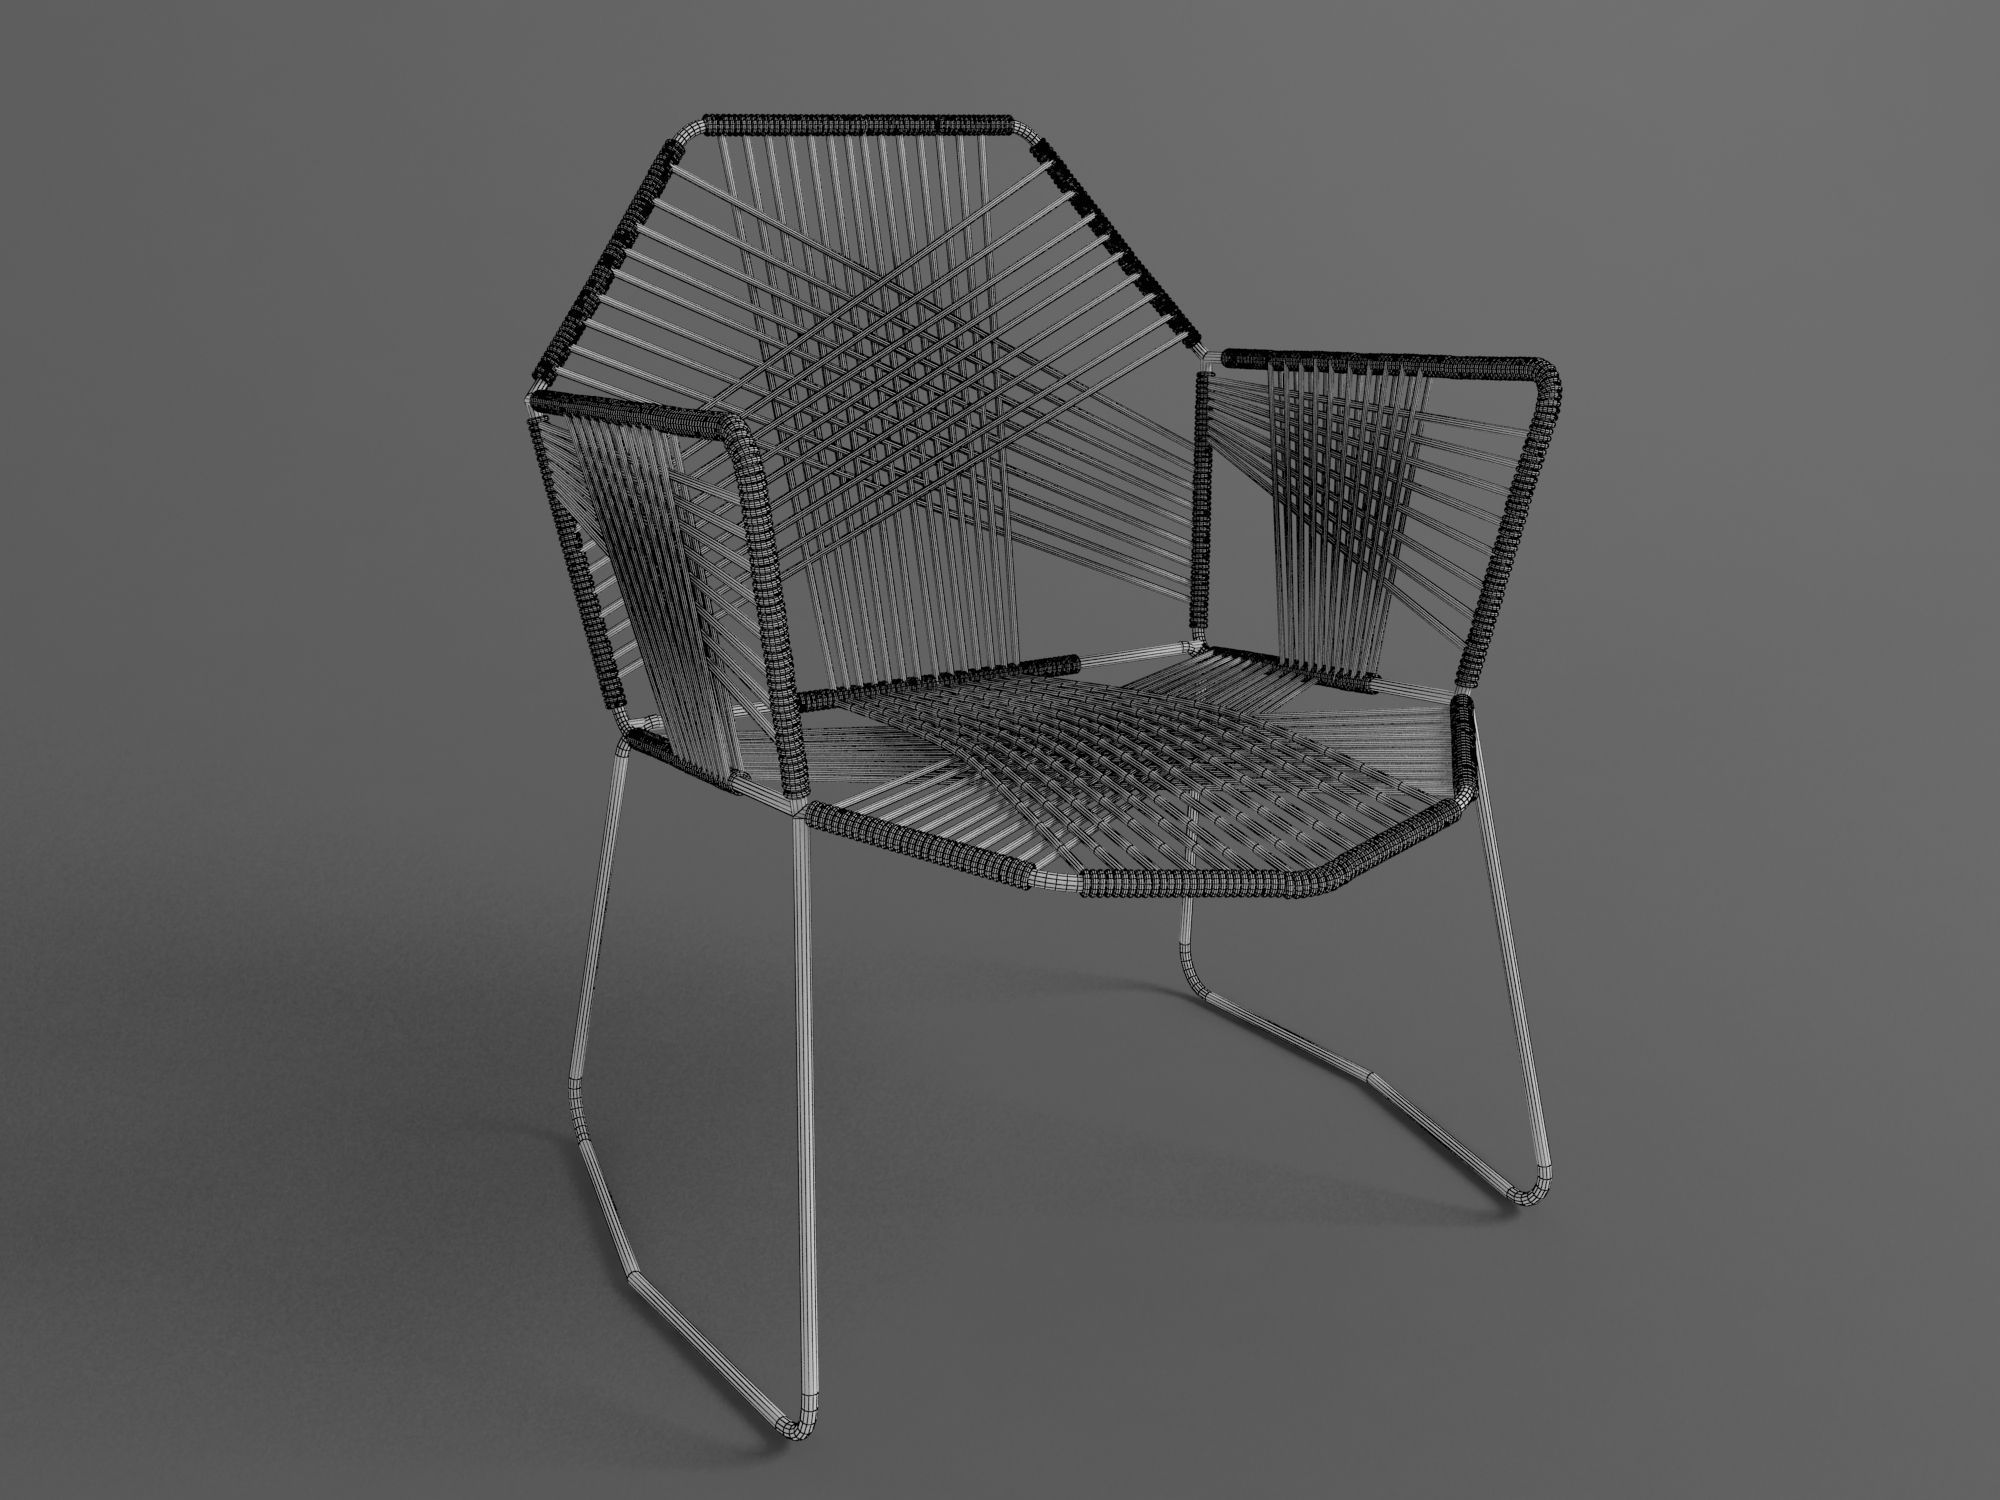 Tropicalia chair 3d model max for New model chair design